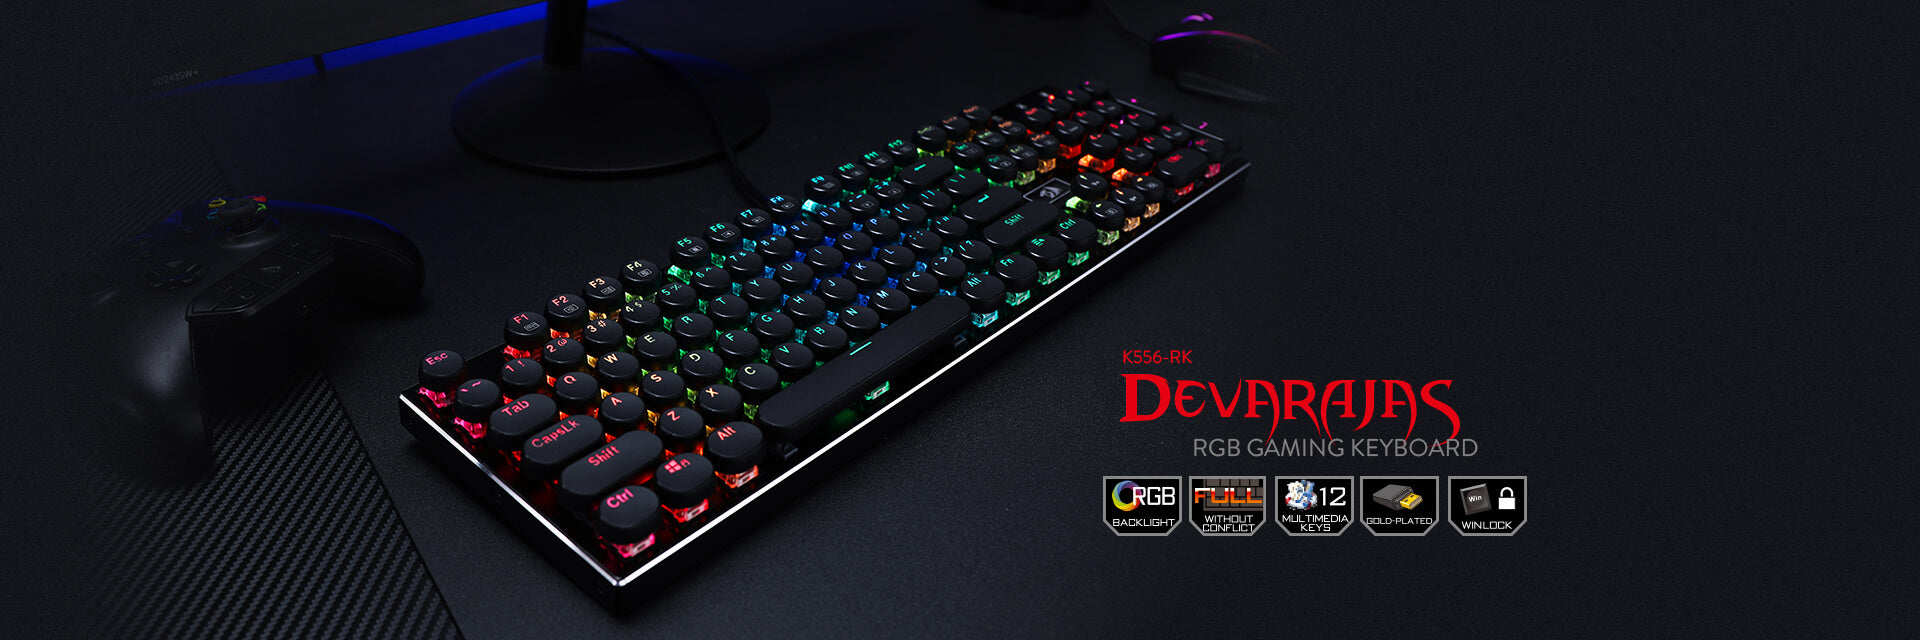 redragon k556-rk gaming keyboard